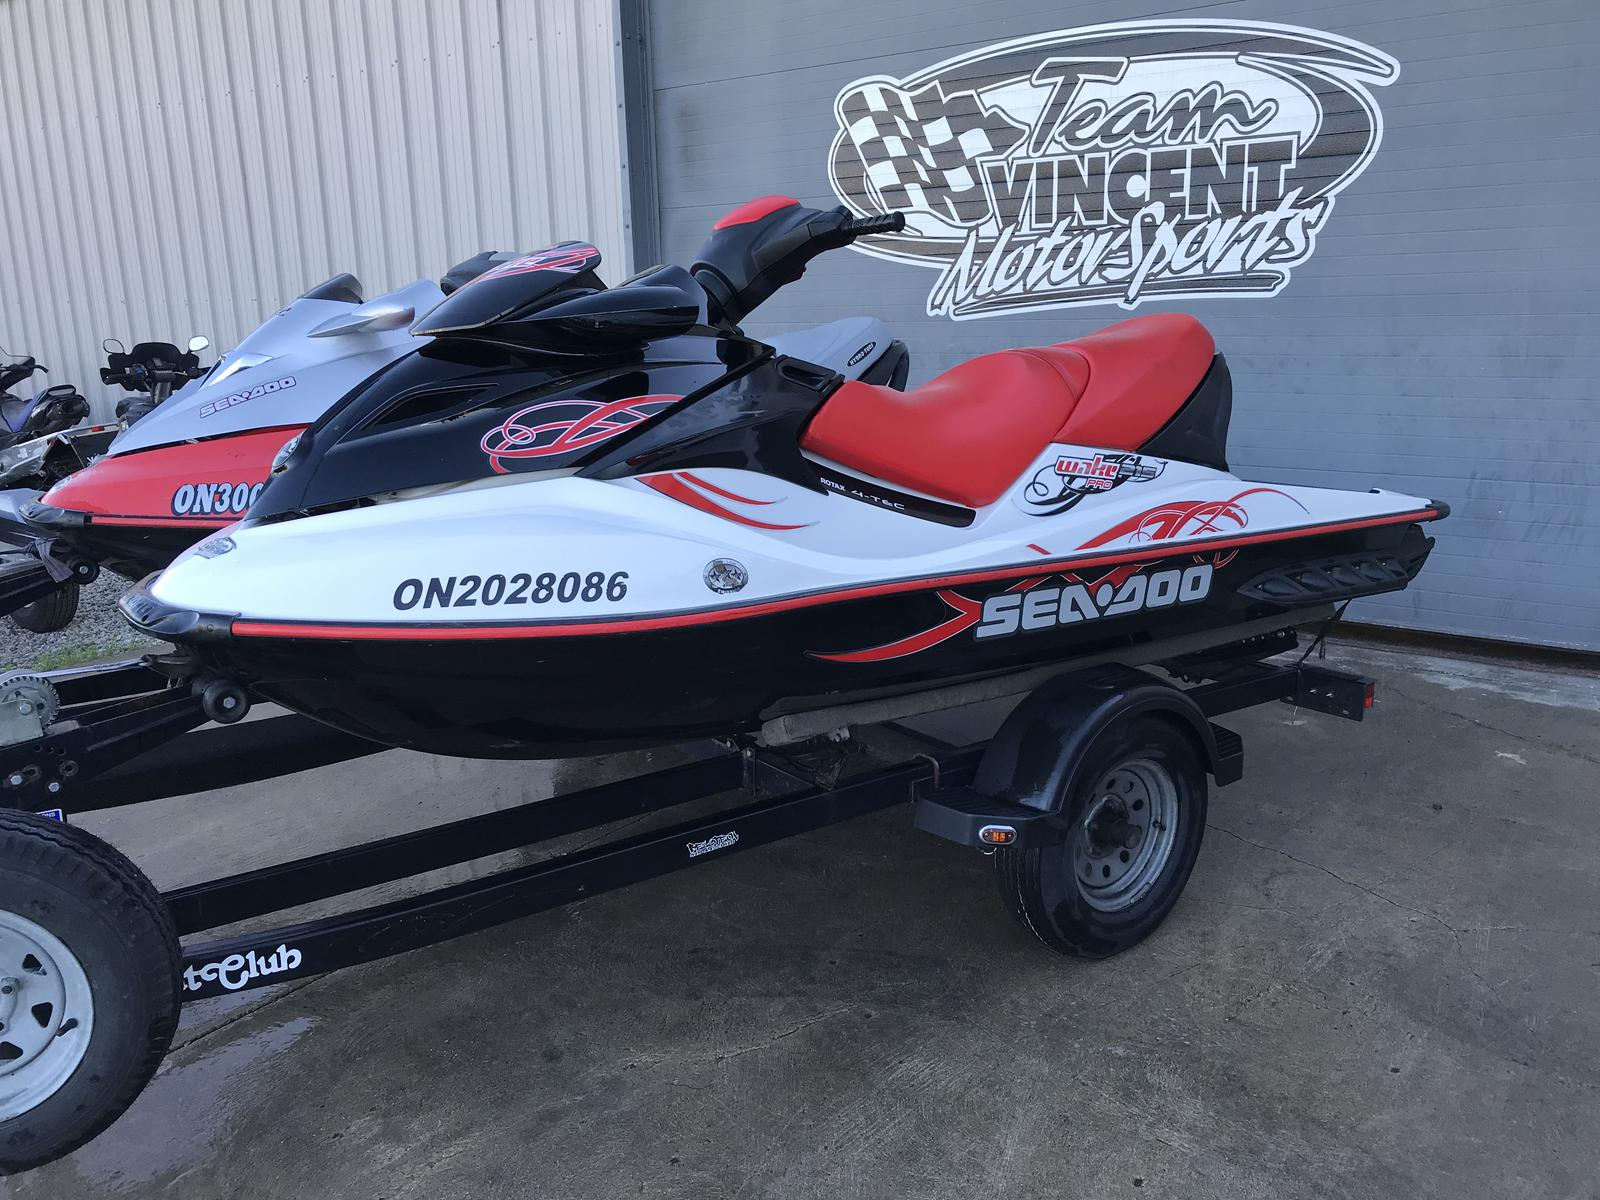 For Sale: 2009 Sea Doo Pwc Wake Pro 215 ft<br/>Team Vincent Motorsports Inc